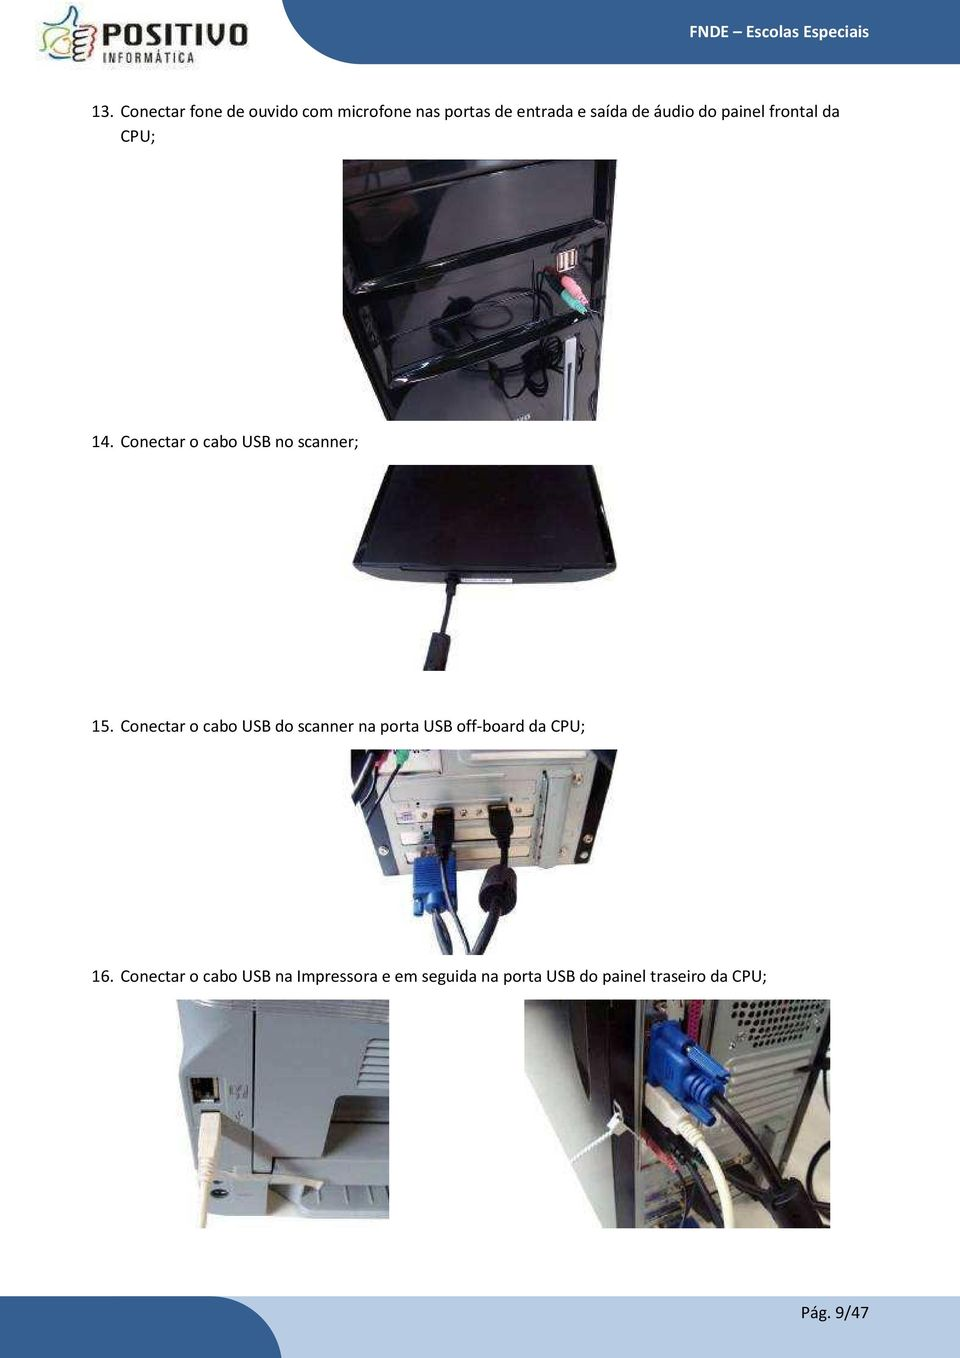 Conectar o cabo USB do scanner na porta USB off-board da CPU; 16.